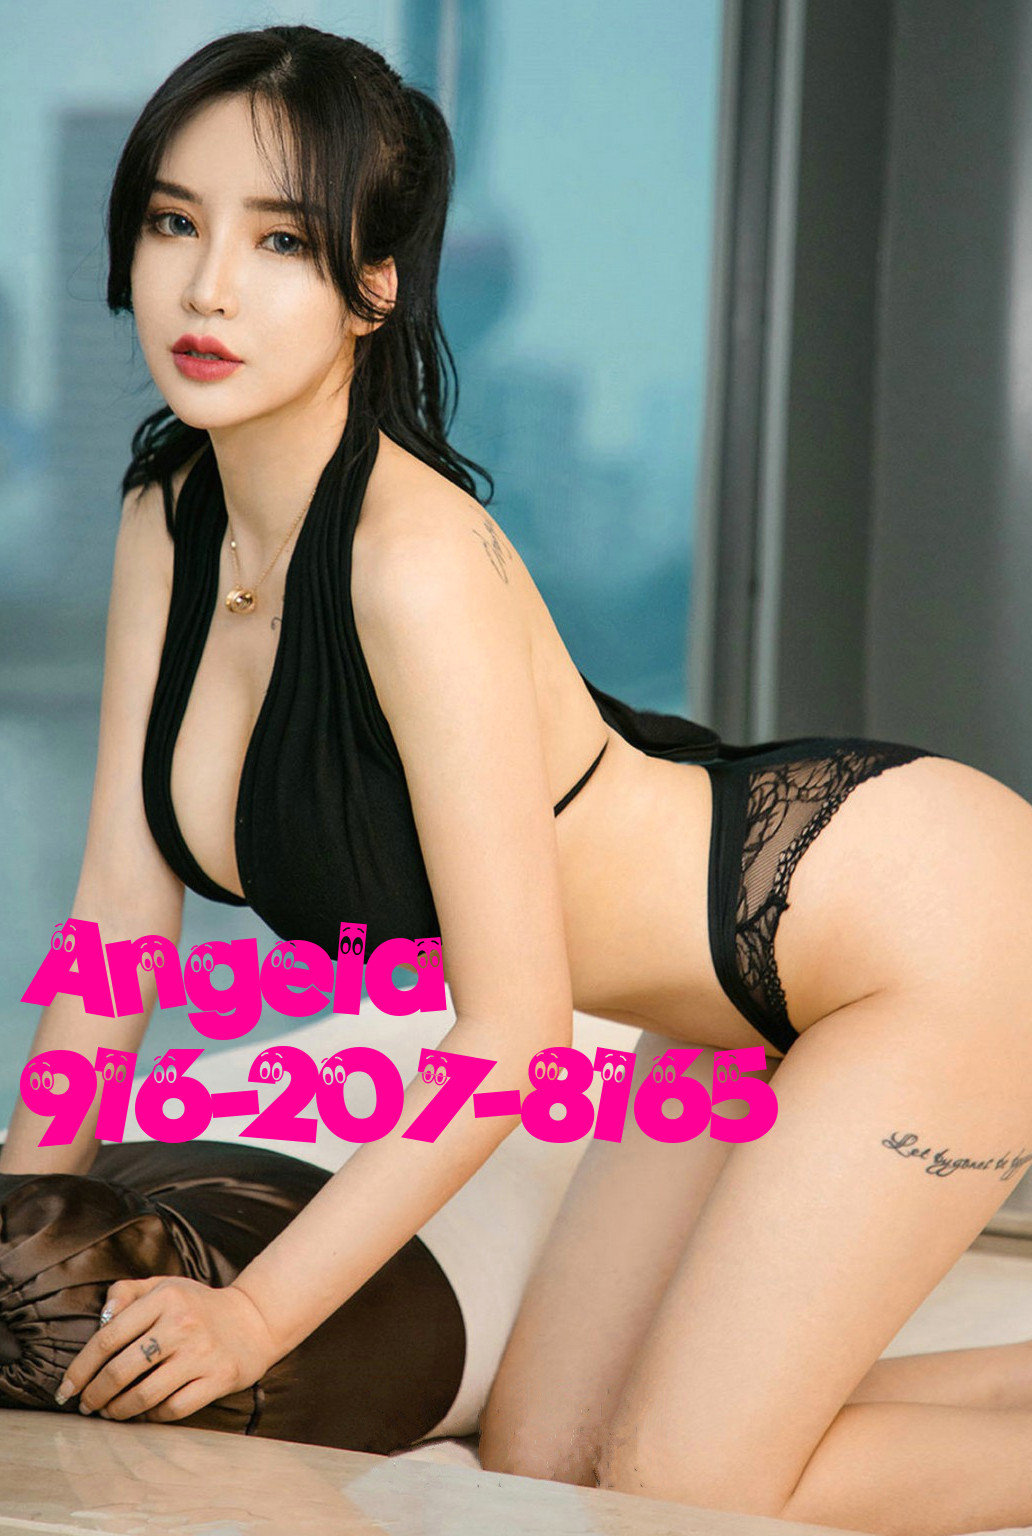 🐠🌐🌐🐠🌐🐠🌐🌐NEW ARRIVAL ASIAN BABY🐠🌐🌐🐠🌐34D SUPER BUSTY🐠🌐🌐🐠🌐🐠🌐🌐